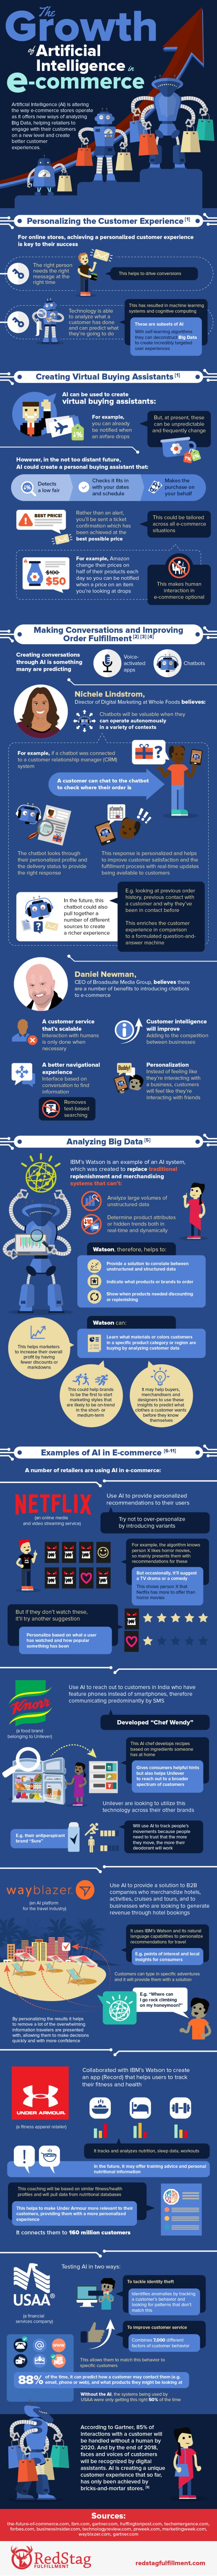 the-growth-of-artifical-intelligence-in-e-commerce-04-1